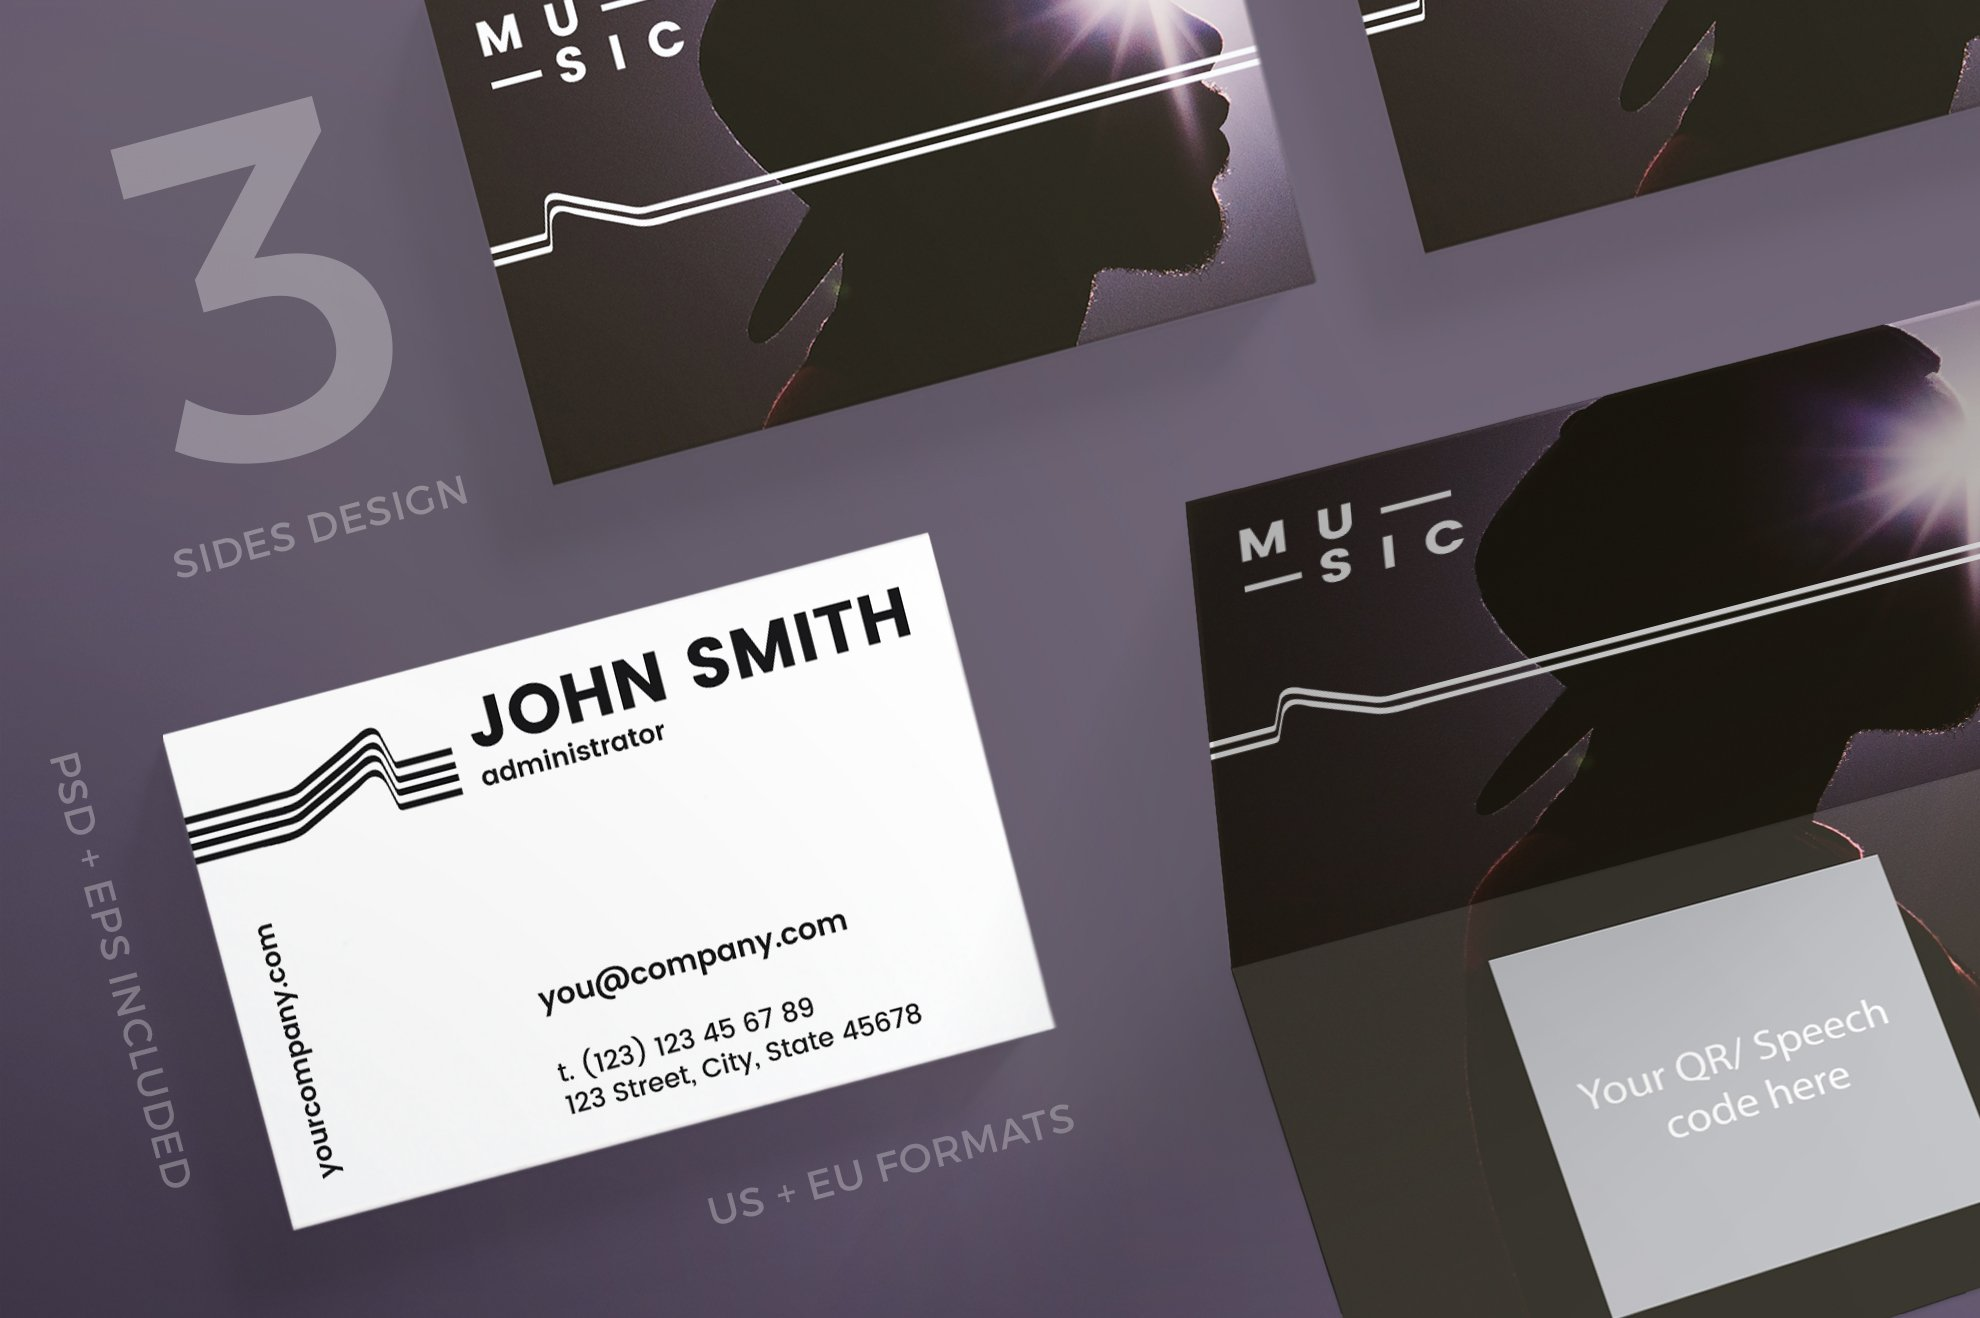 Creative business cards music gallery card design and card template 123 business cards images free business cards mu business cards image collections free business cards business magicingreecefo Images